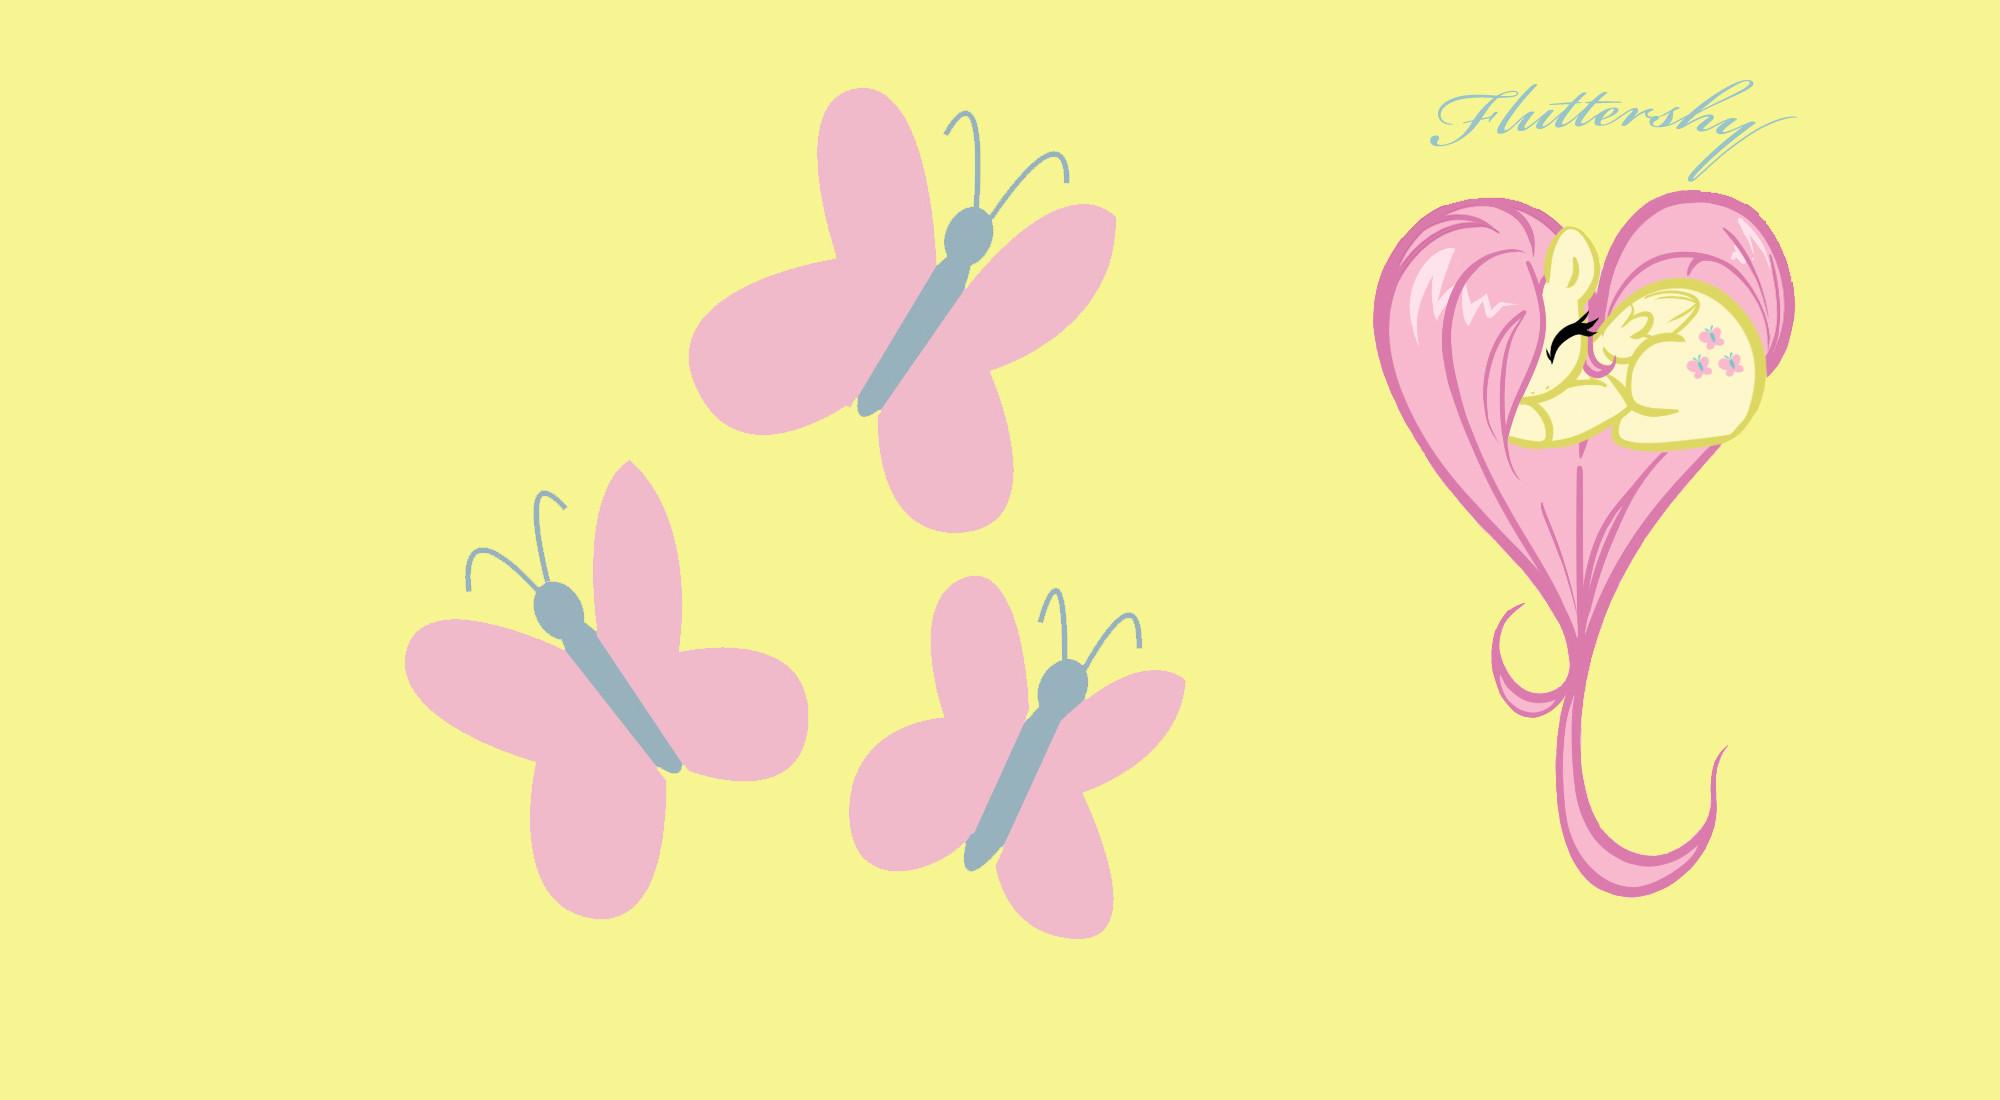 2000x1100 Fluttershy Heart Wallpaper by Keat38 on DeviantArt